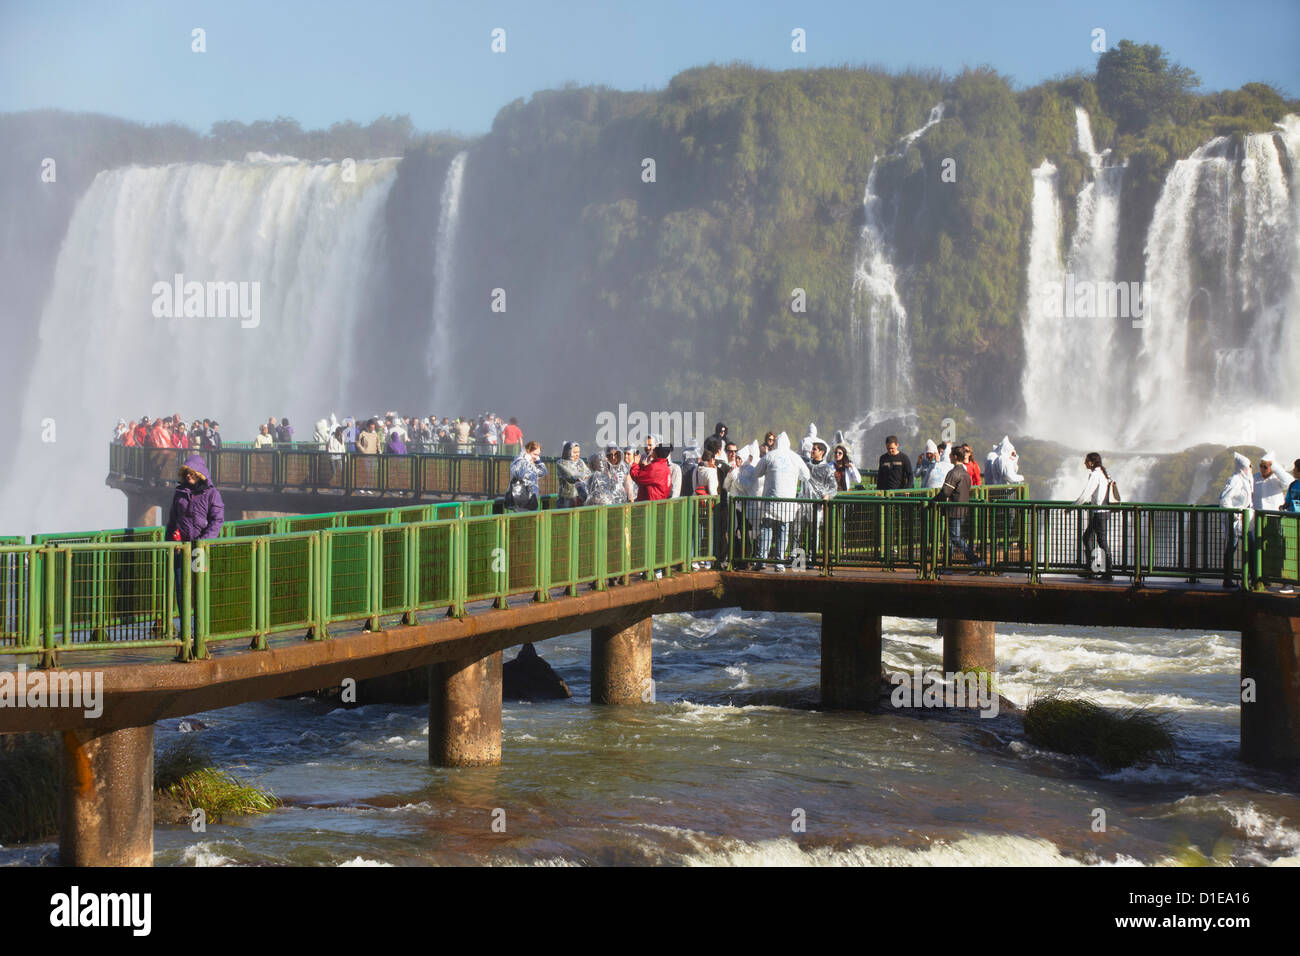 Tourists on walkway at Iguacu Falls, Iguacu National Park, UNESCO World Heritage Site, Parana, Brazil, South America - Stock Image